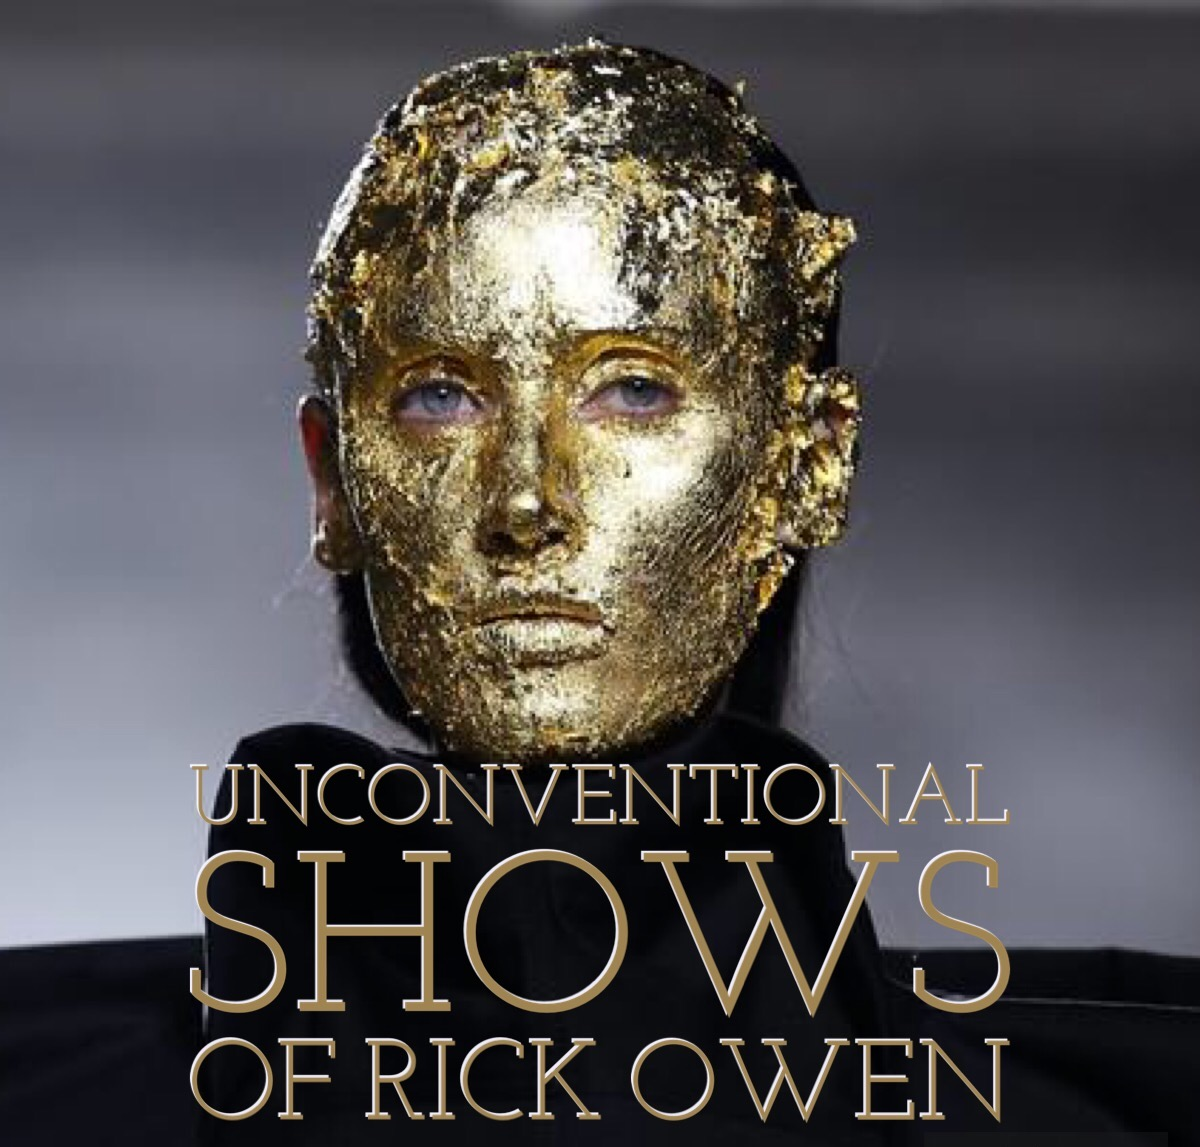 Unconventional Shows of Rick Owen